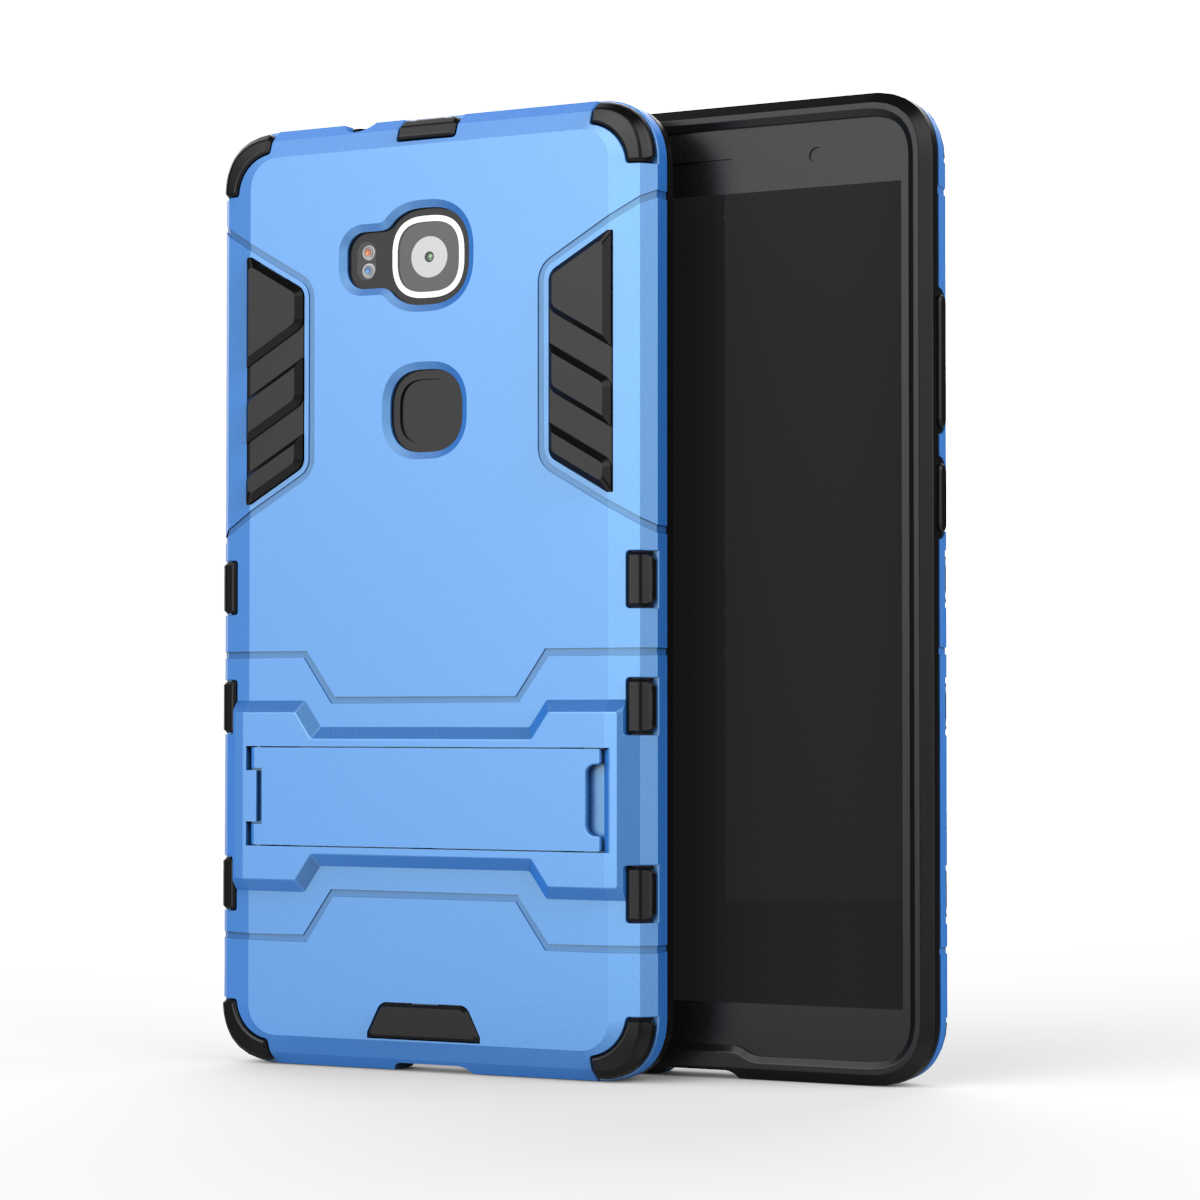 For Huawei G8 Case GX8 Armor Heavy Duty Hybrid Hard Soft Rugged Silicone Rubber Phone Cover For Ascend G8 G7 Plus with Stand (<